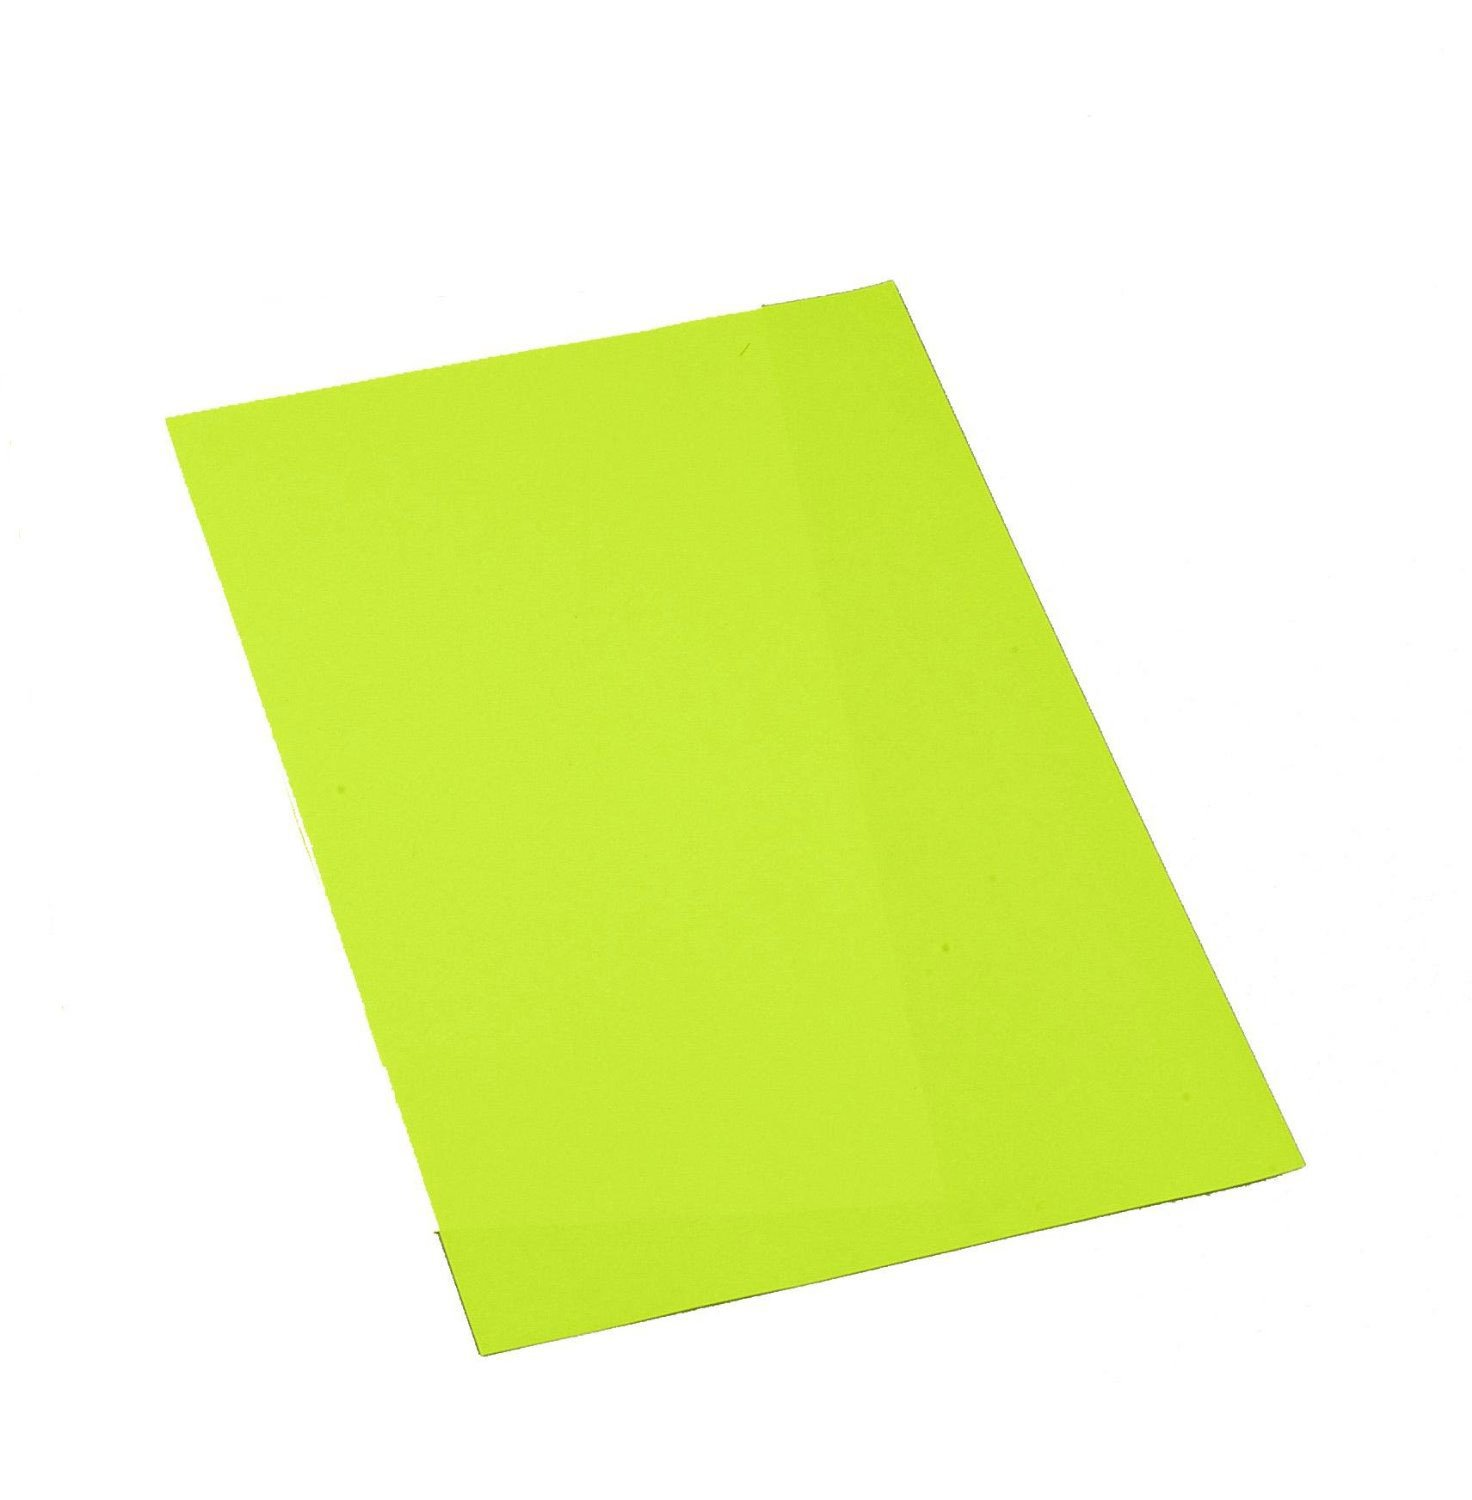 Day-Glo Copier Paper 841mm x 100m Green (Roll) by Dayglo